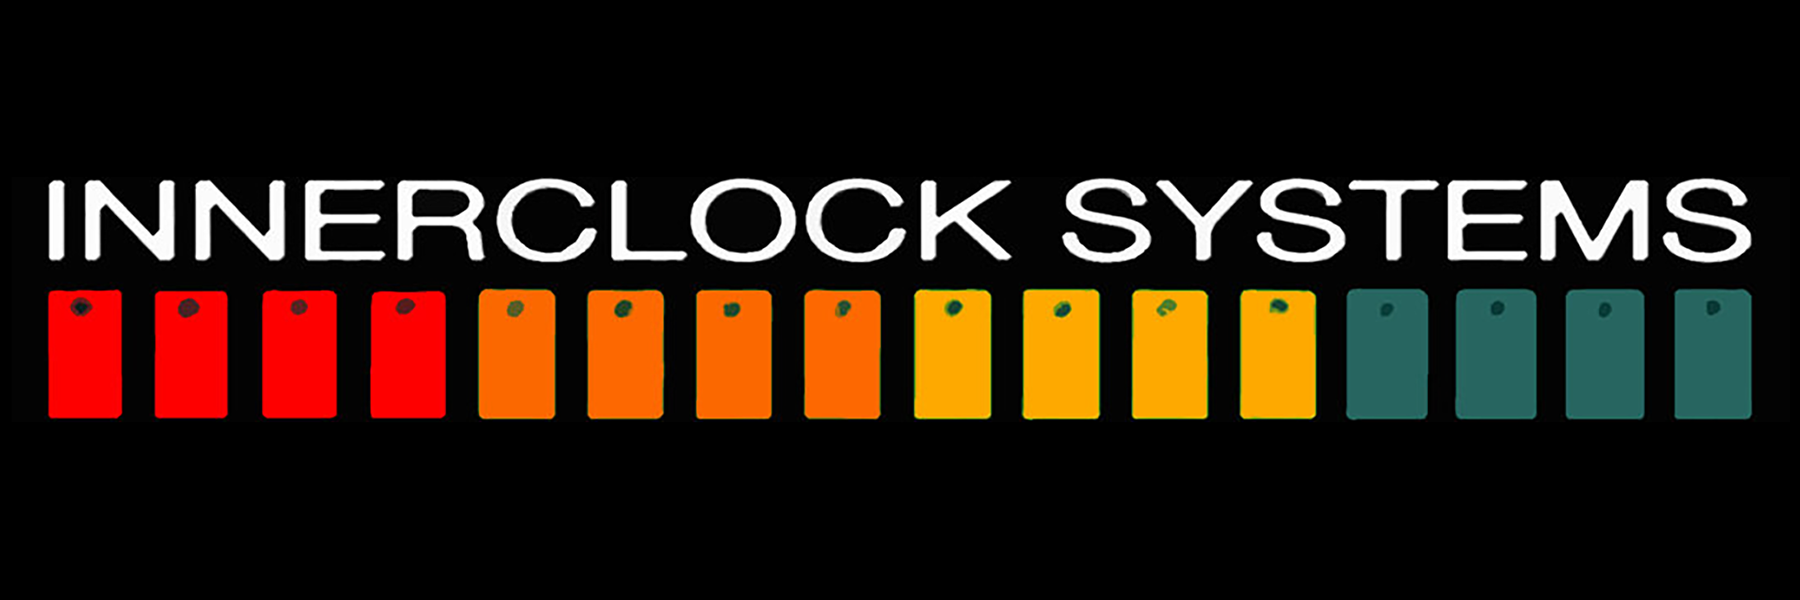 Innerclock Systems